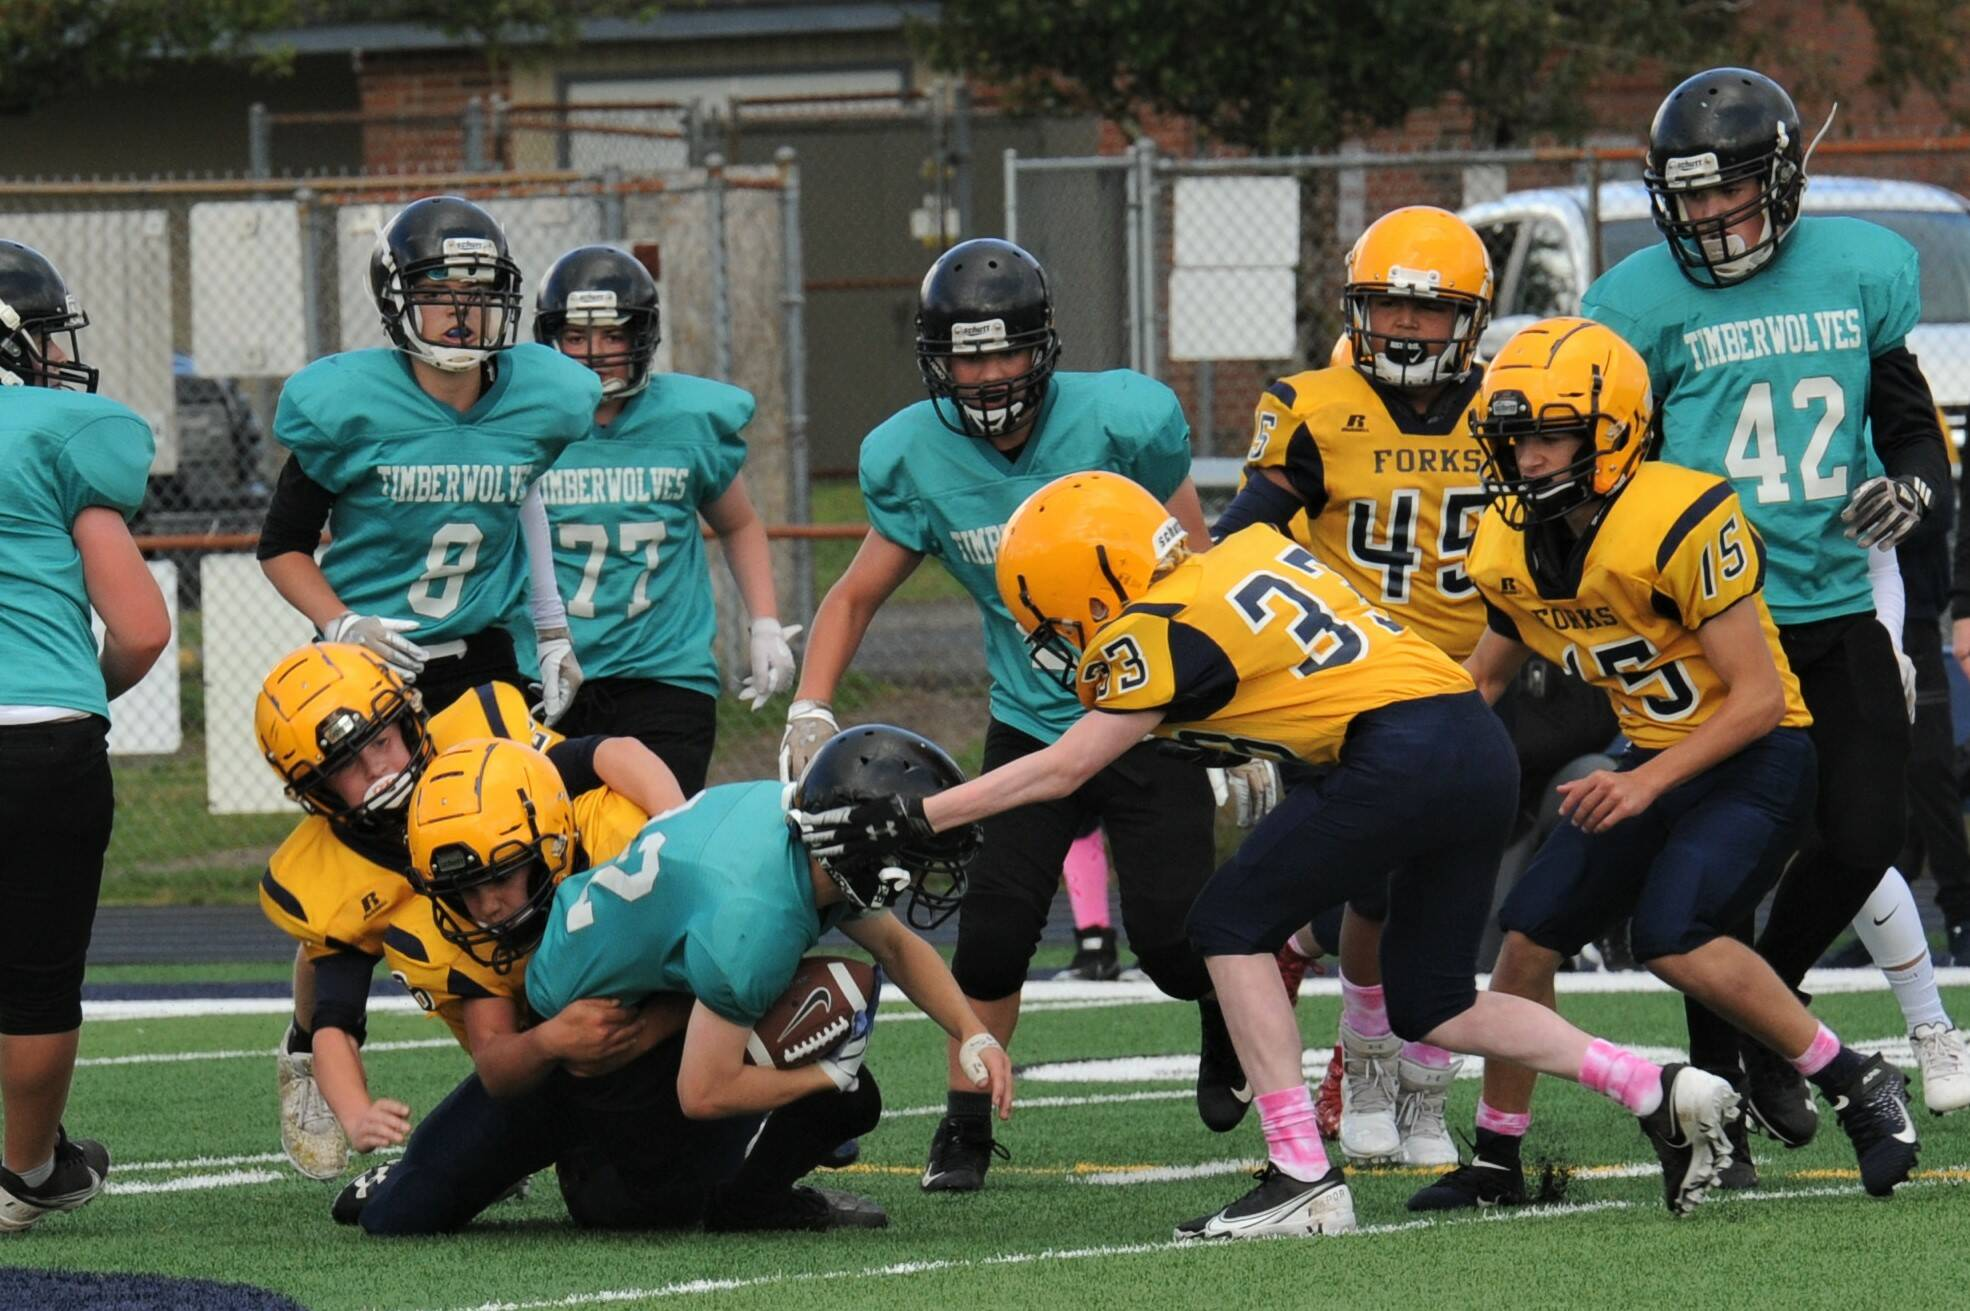 Above: Several Spartans converge on a Timberwolf running back. Photos by Lonnie Archibald